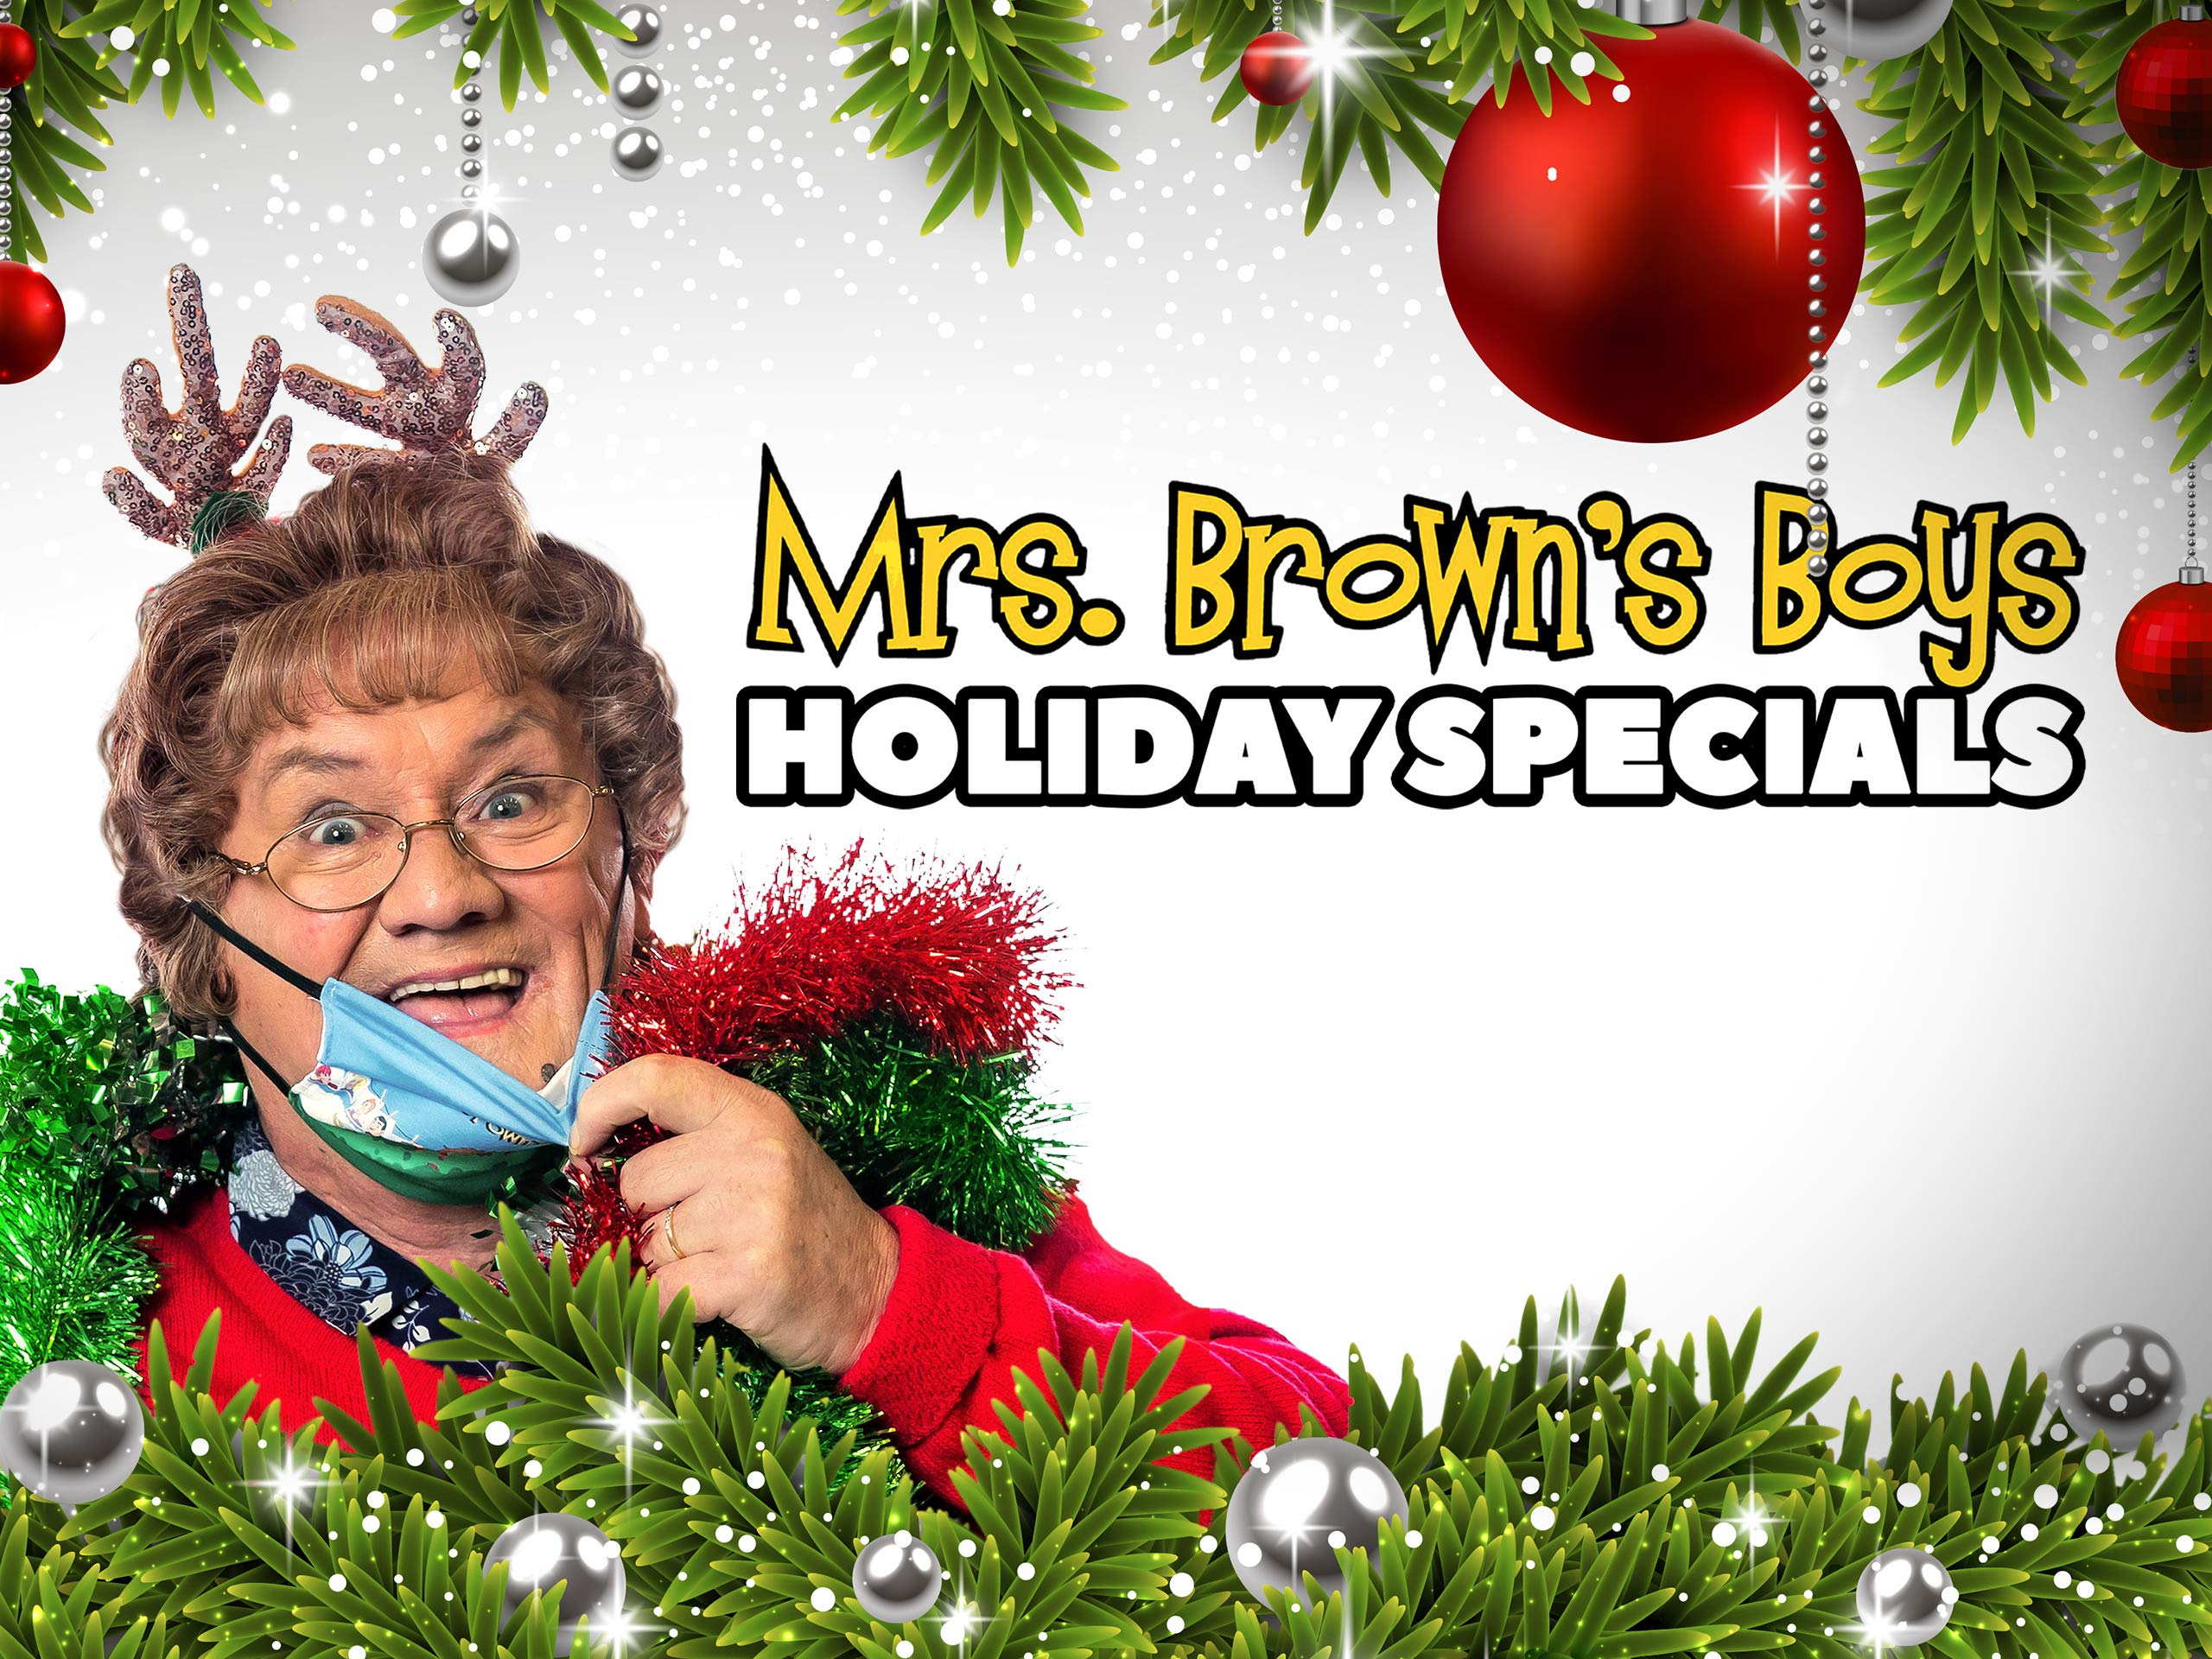 Mrs Browns Boys...Full Episodes Christmas Special 2021 Watch Mrs Brown S Boys Holiday Specials 2019 2020 Prime Video